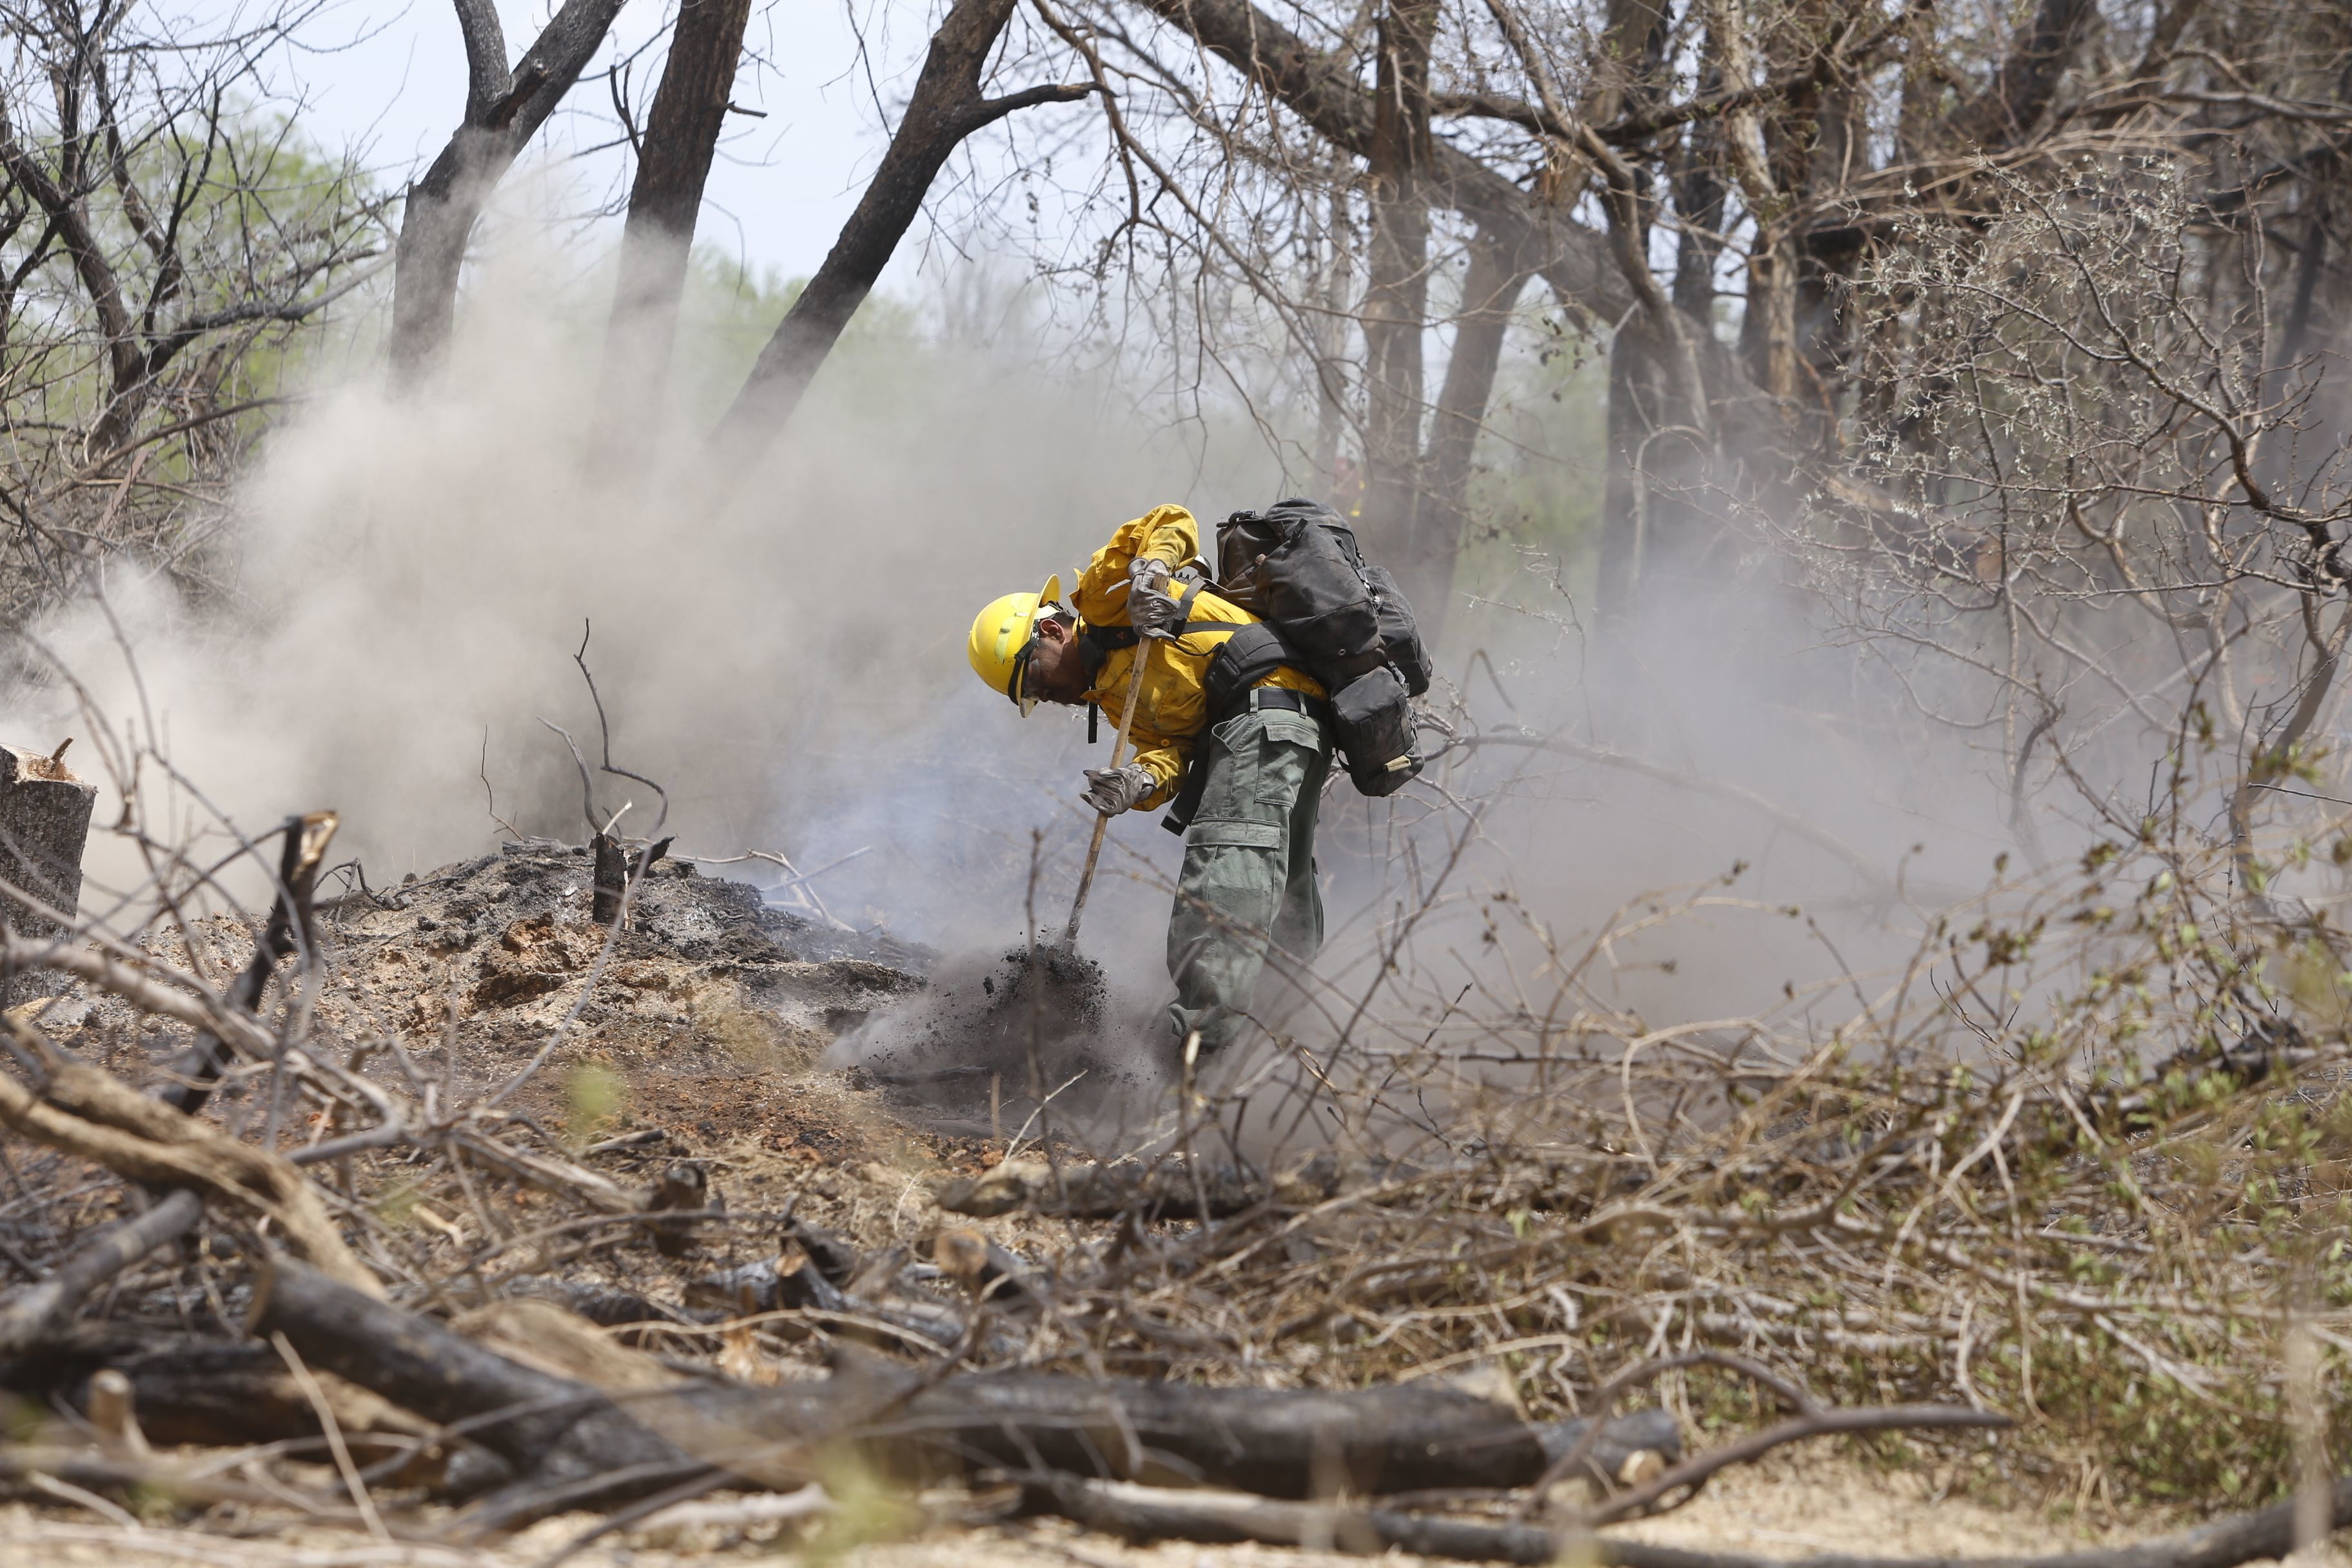 A firefighter works on smoldering tree stumps on April 30, 2018 after a fire burned more than 200 acres near Navajo Route 364 and Fifth Lane in Shiprock.